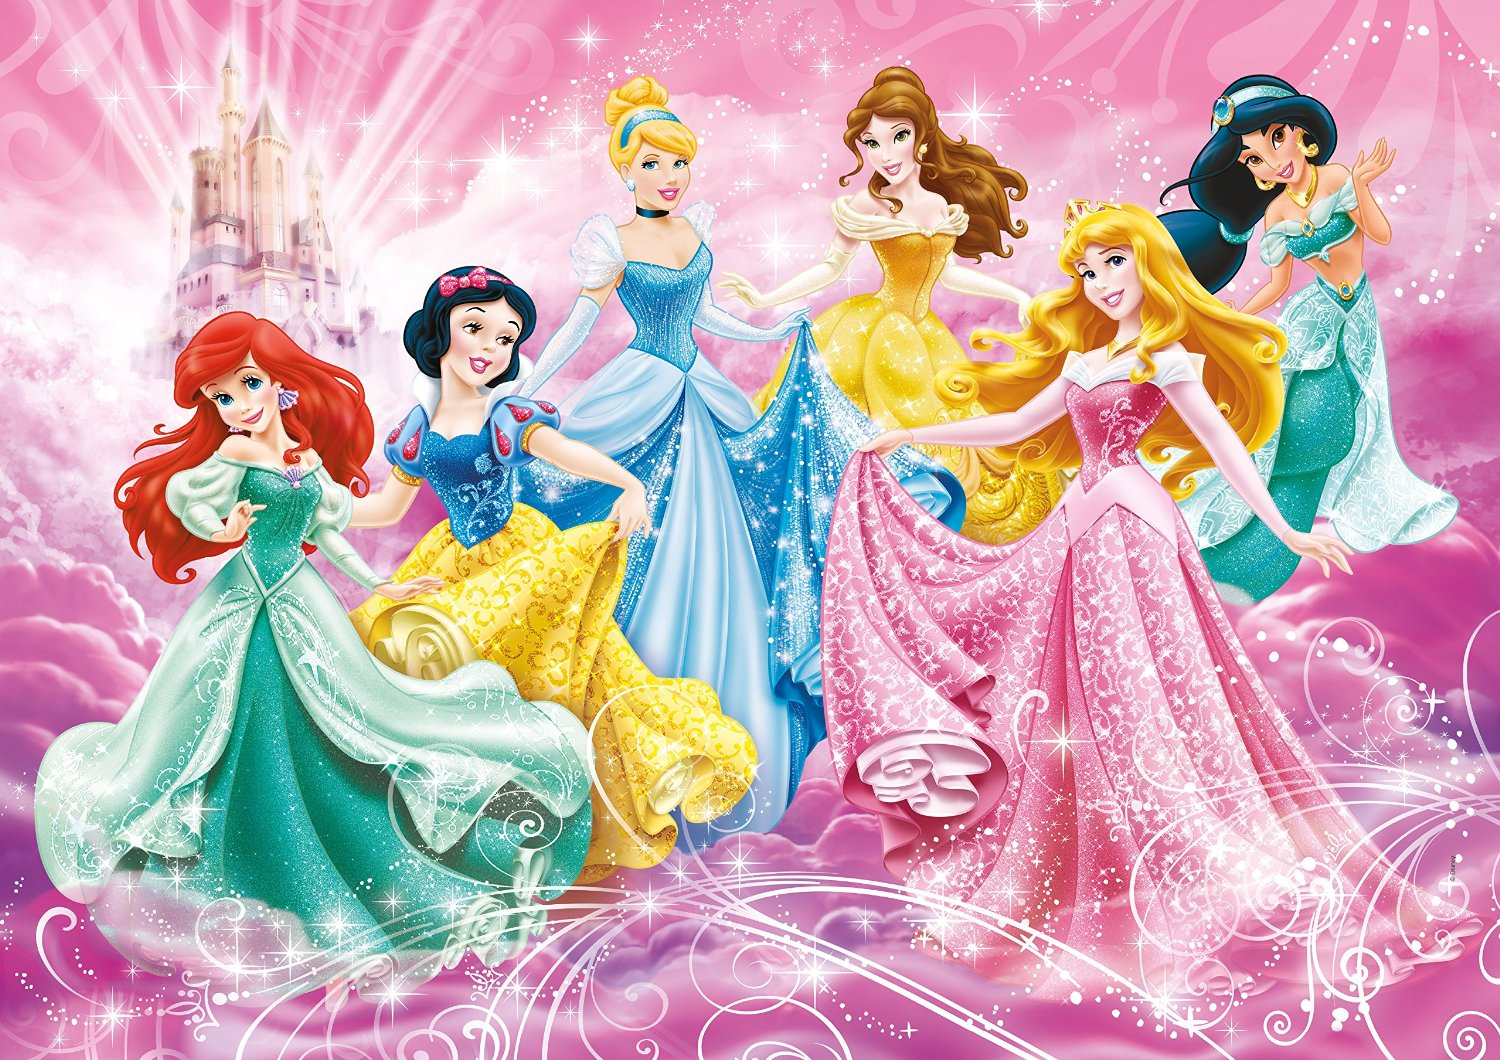 puzzle xxl disney princesses clementoni 24466 24 pi ces puzzles princes et princesses. Black Bedroom Furniture Sets. Home Design Ideas